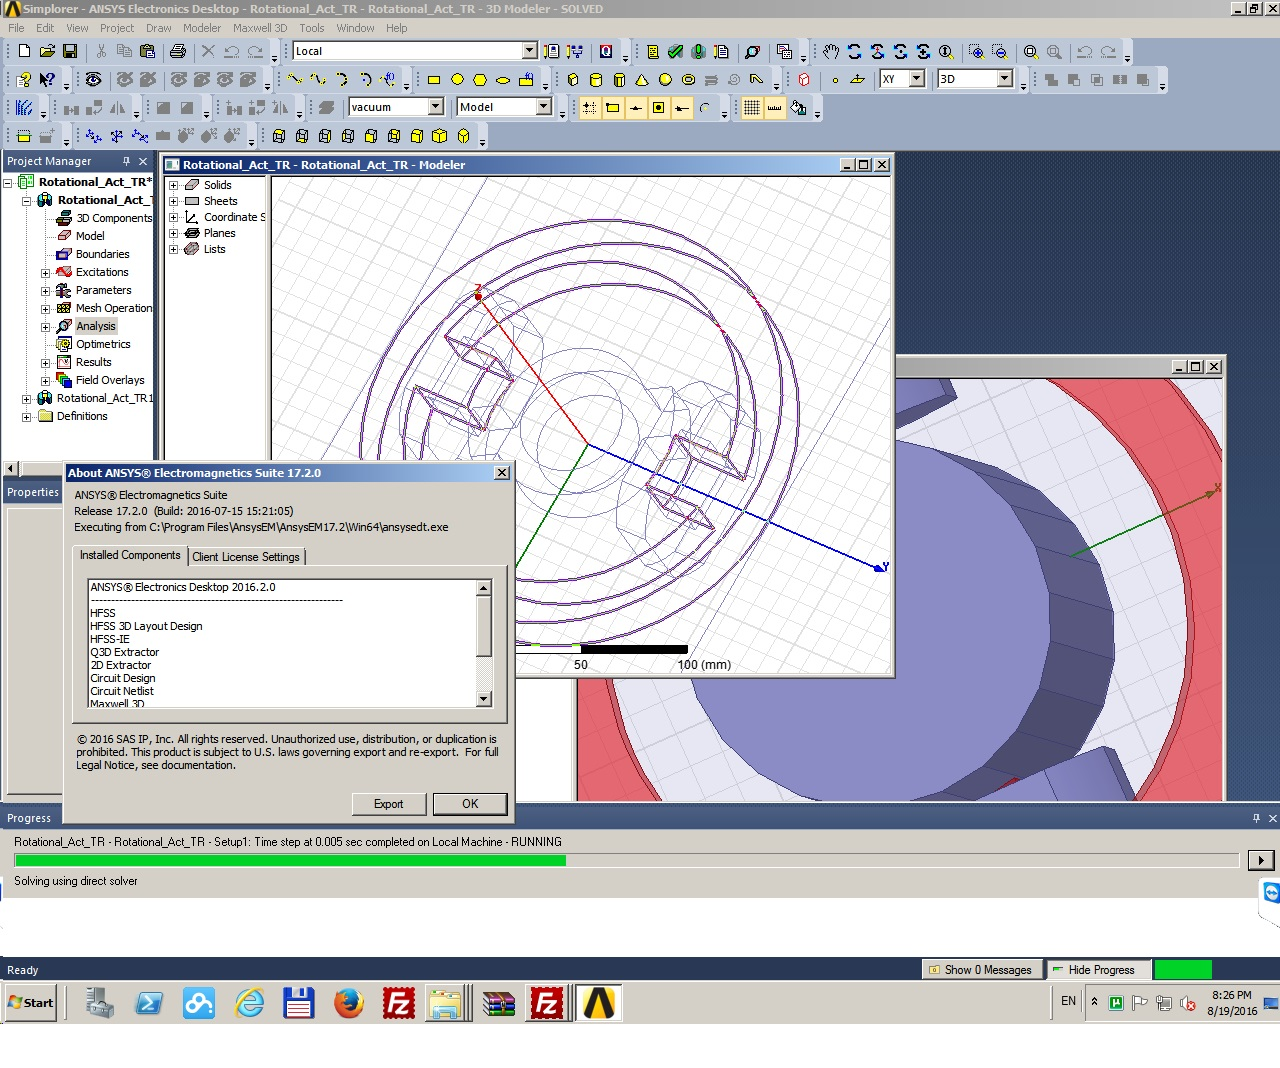 Working with ANSYS Electromagnetics Suite 17.2 Win64